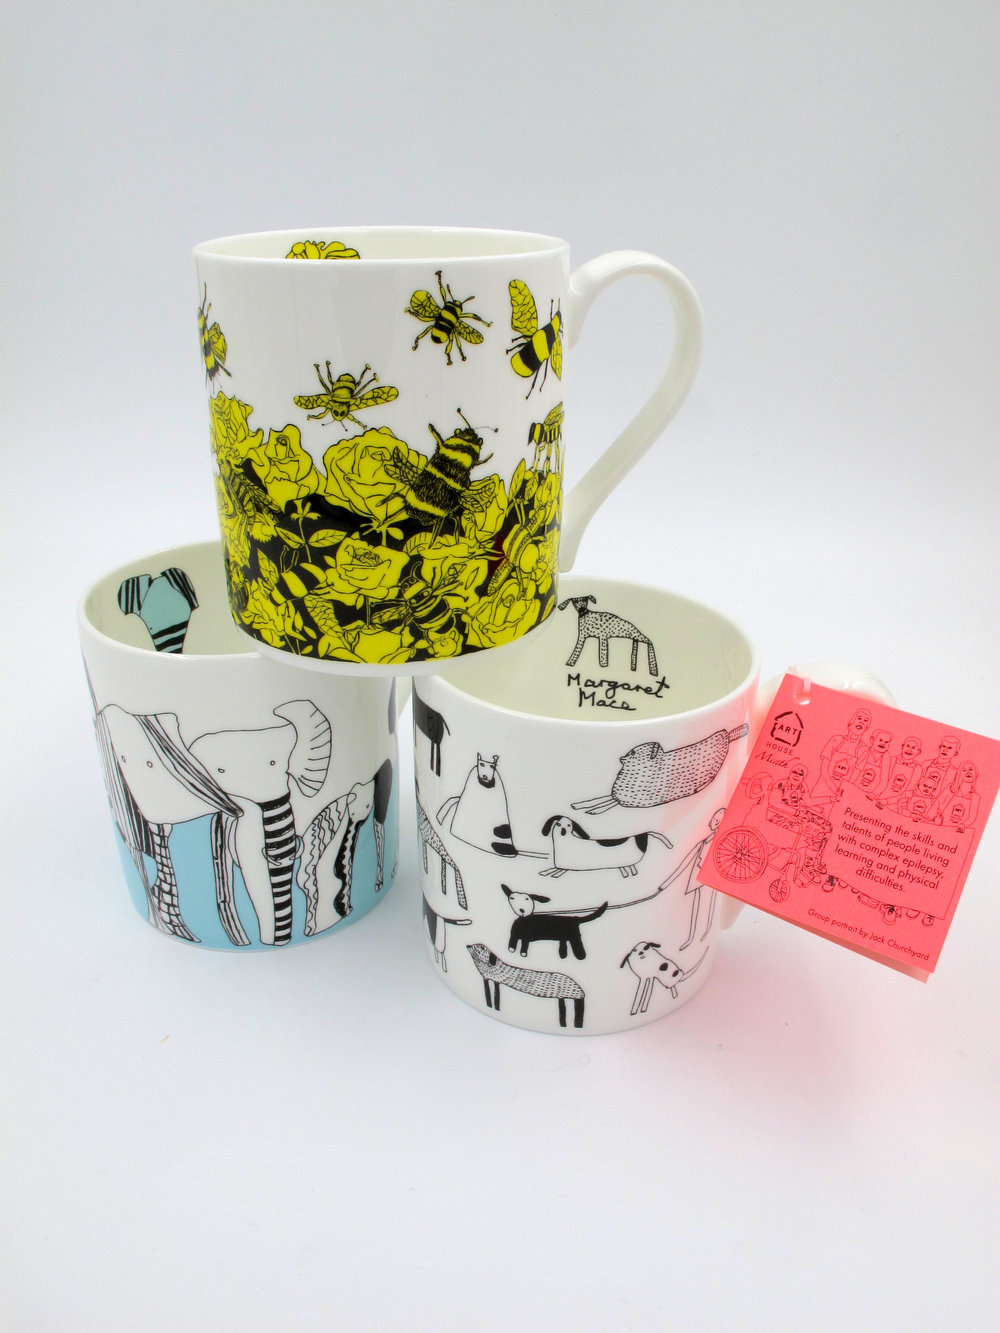 Fabulous designs produced in England by Arthouse Unlimited